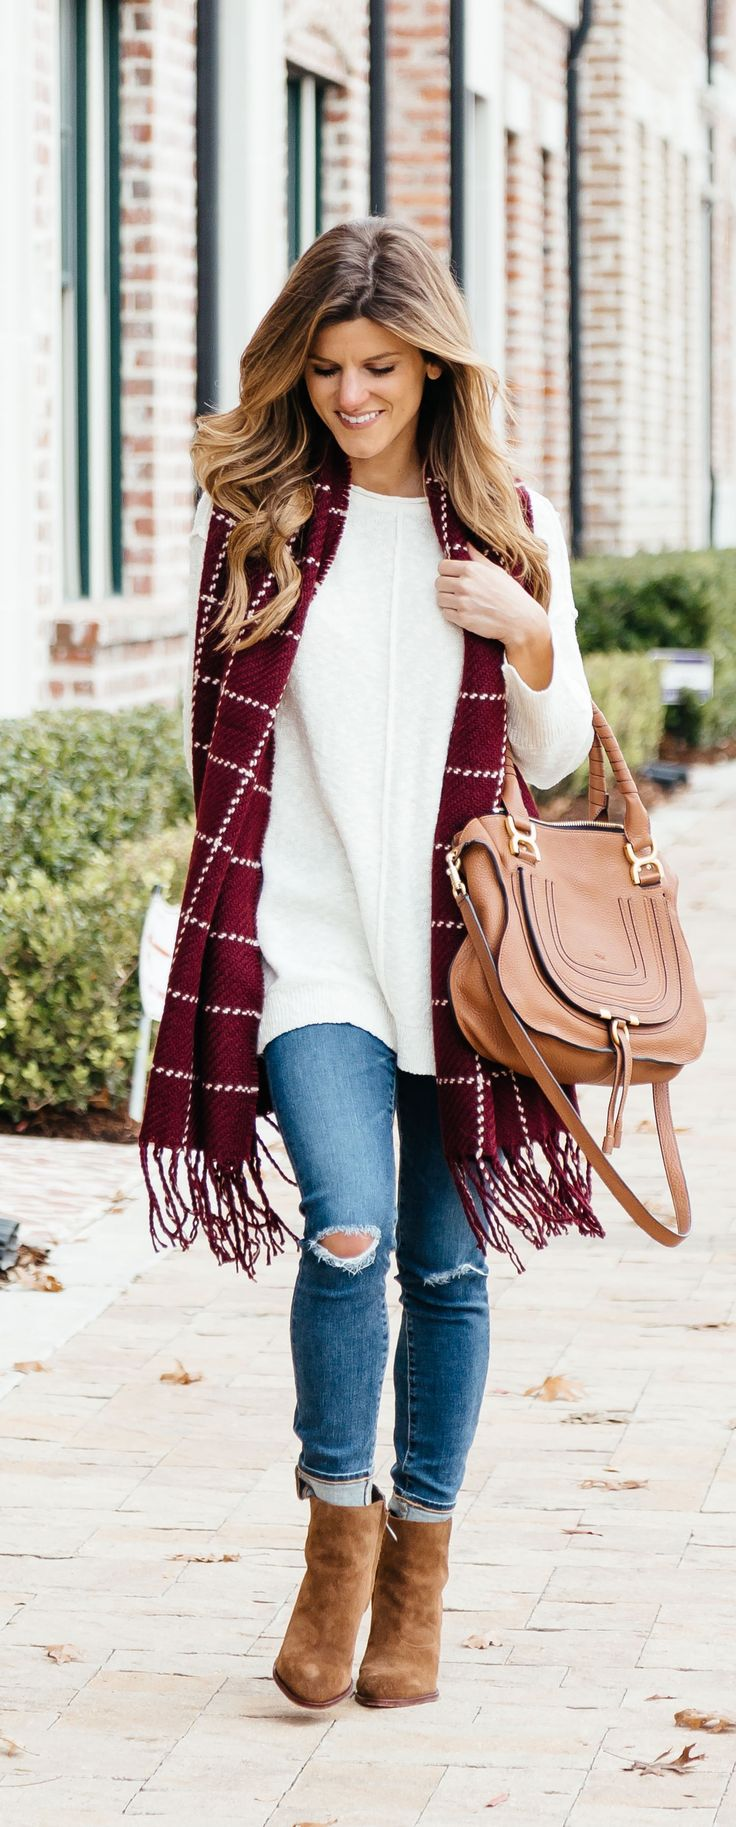 fall outfit, cream tunic sweater, burgundy scarf, chloe marcie bag tan, casual outfit idea winter accessories